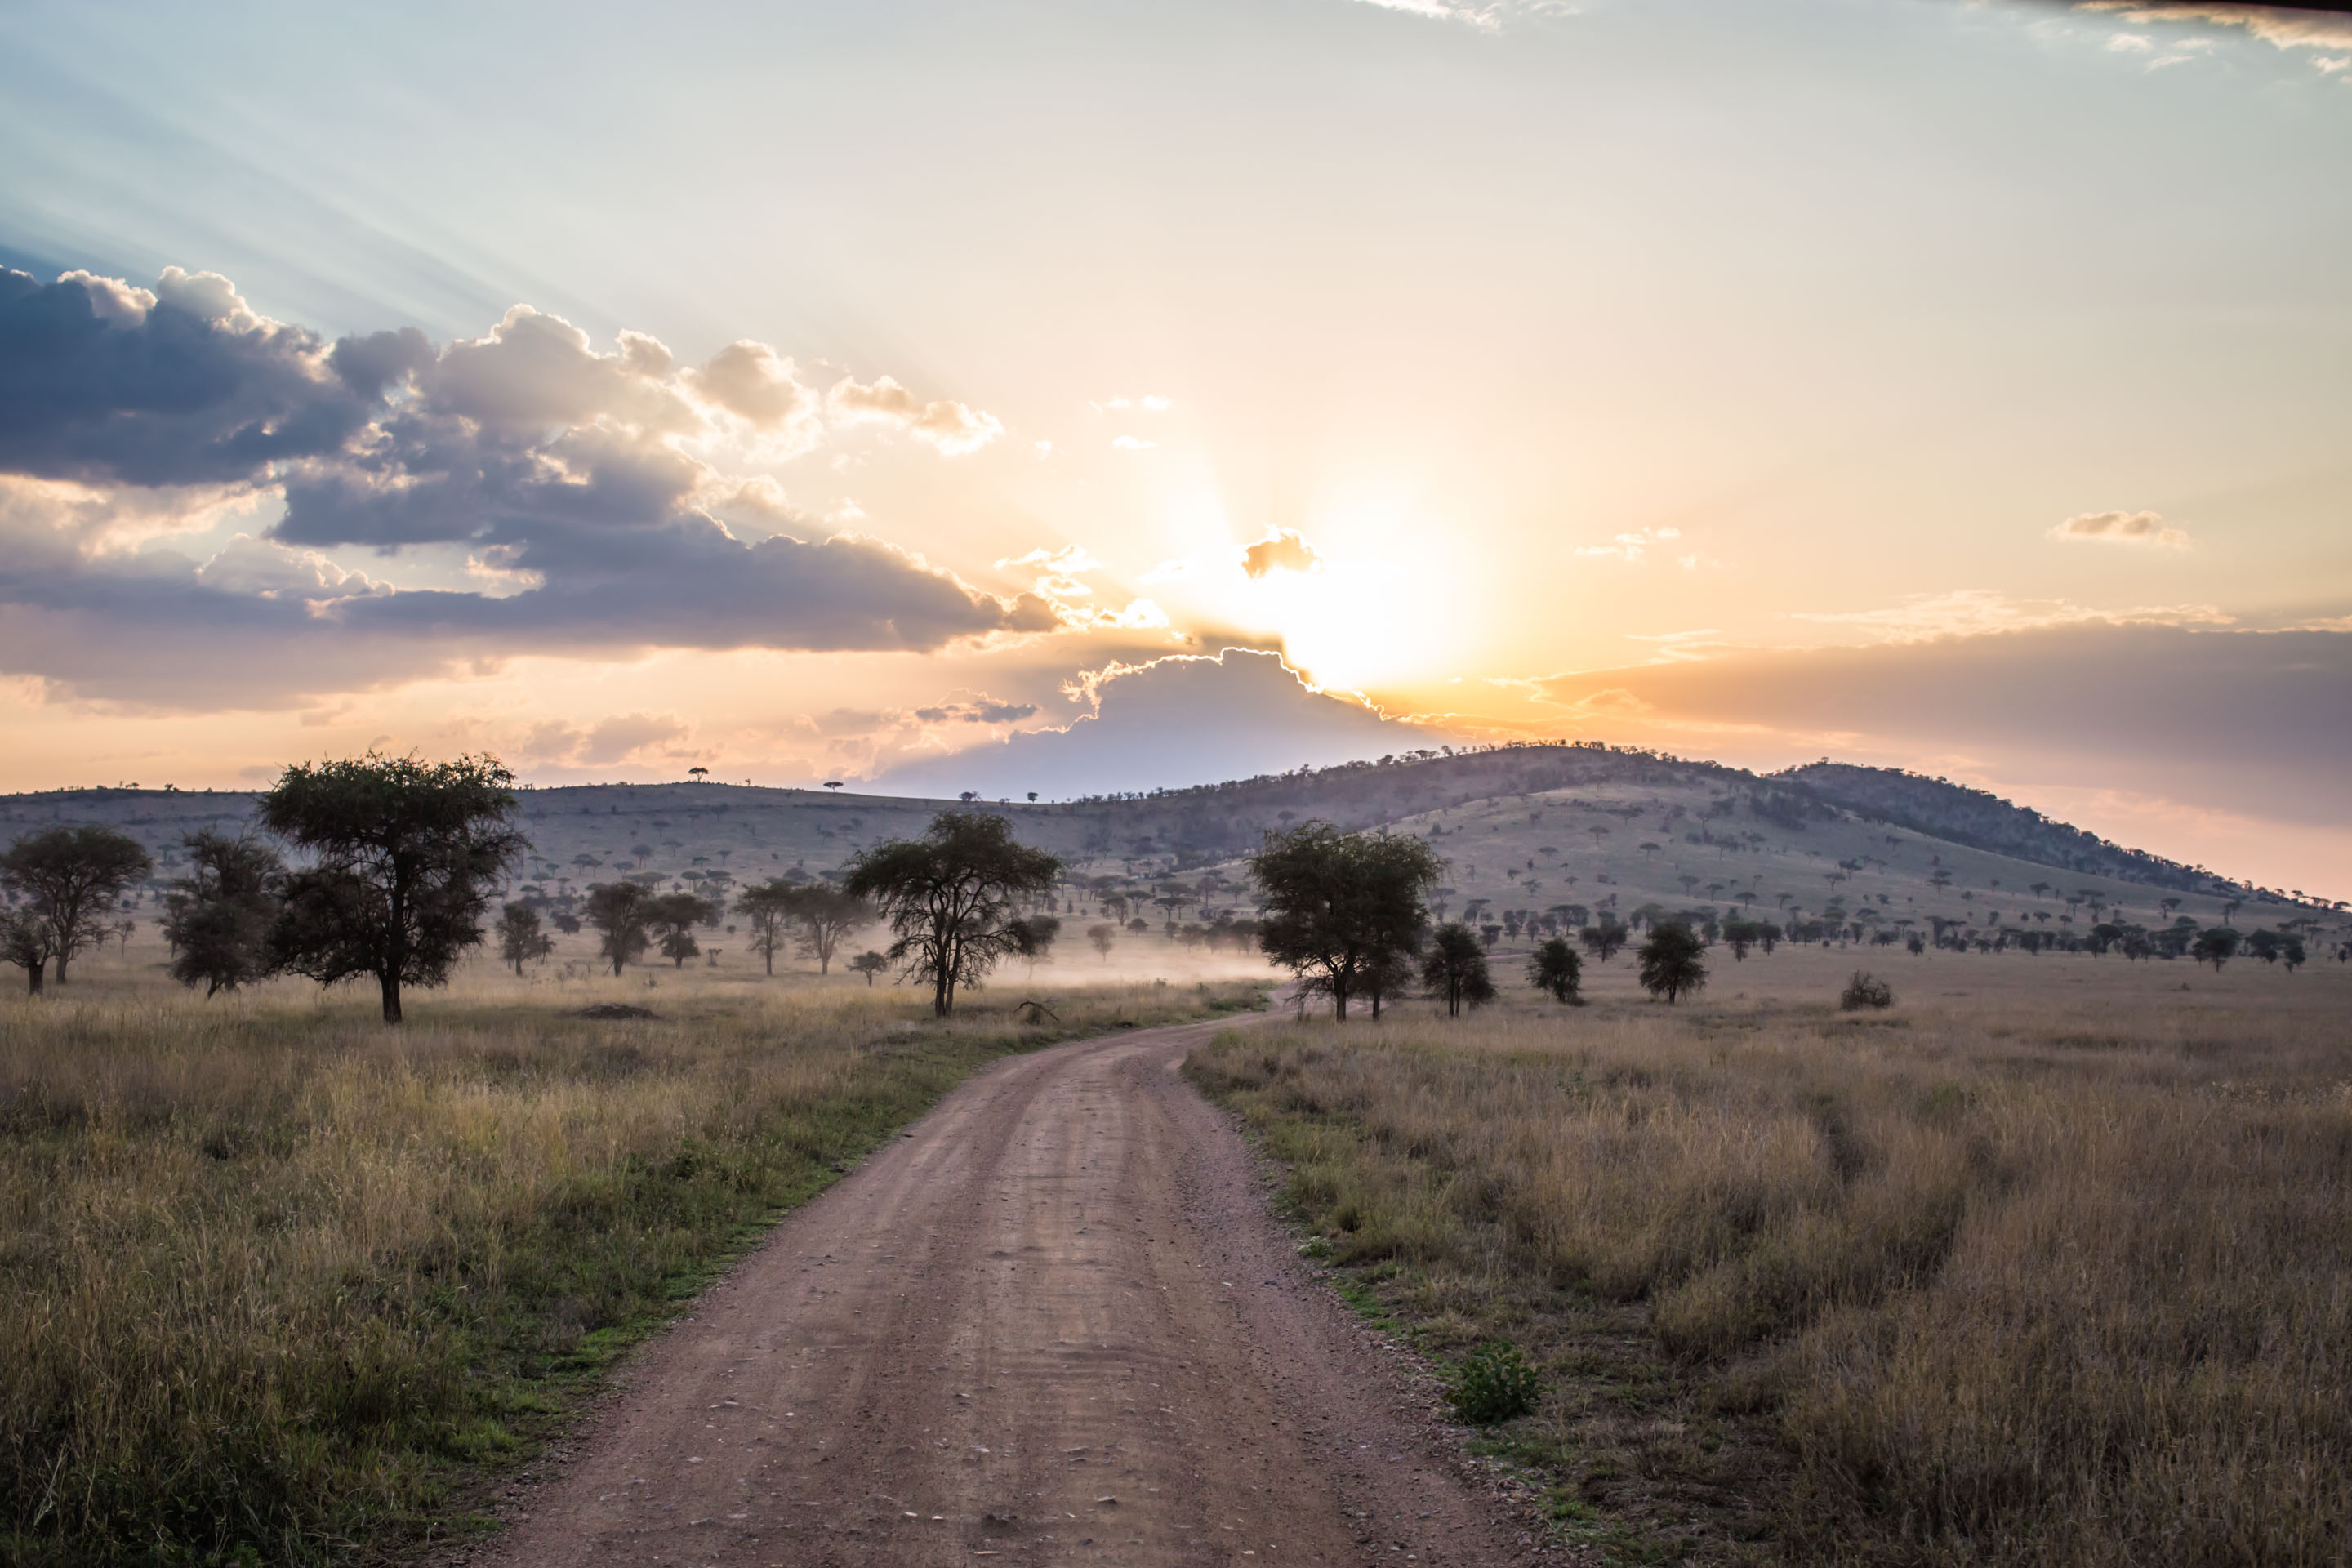 Sunrise from behind the hills in Serengeti